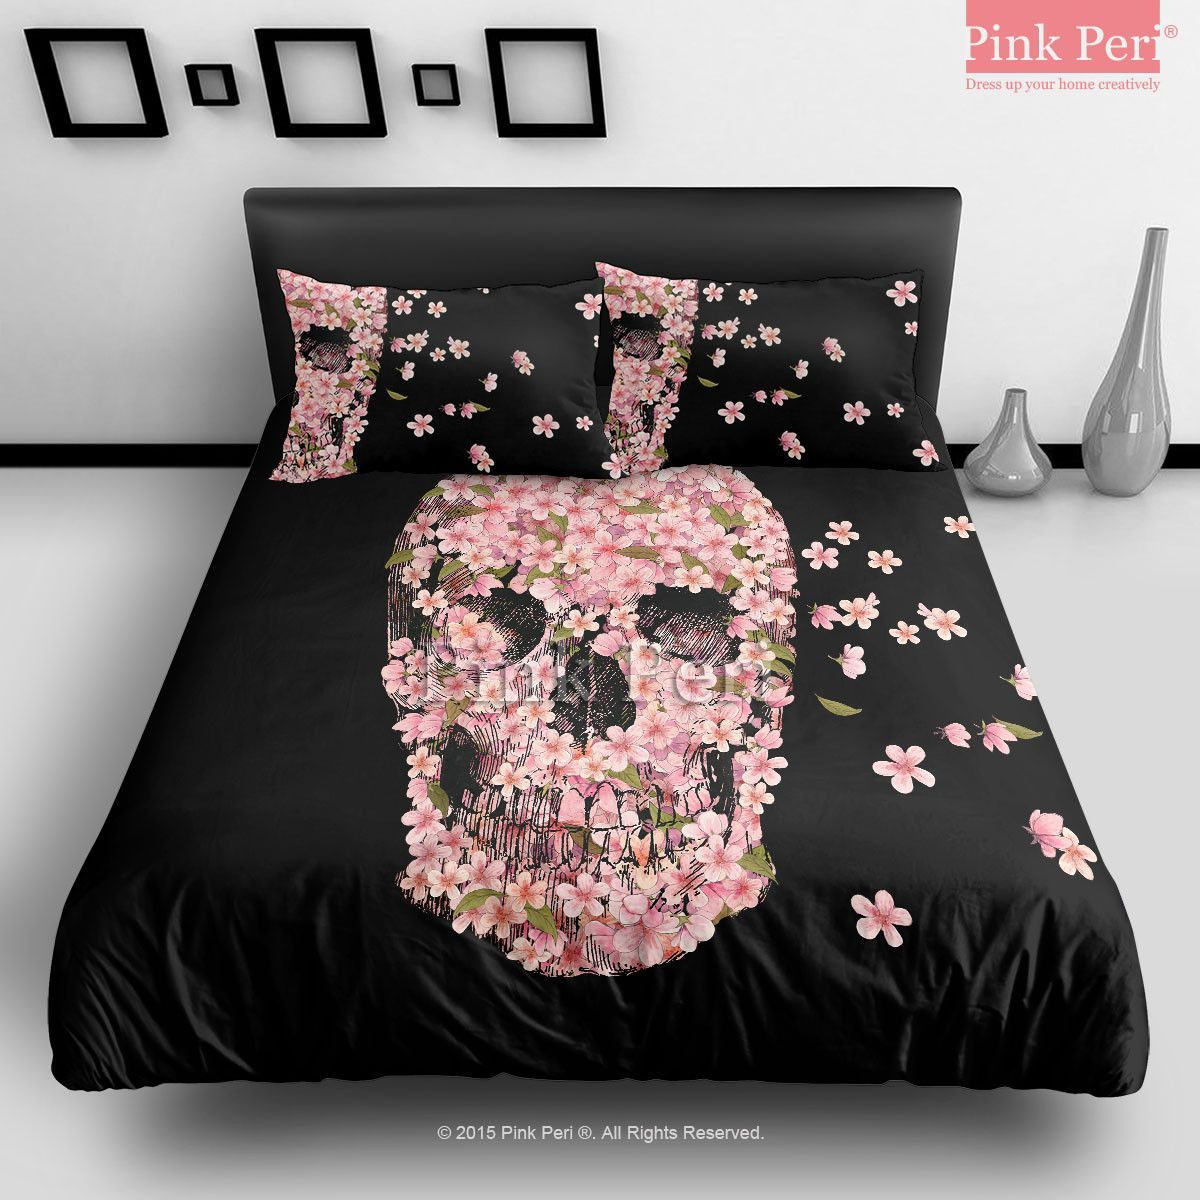 Black and pink bed sheets - Black Bedding With Pink Flowers Shaped As A Skull